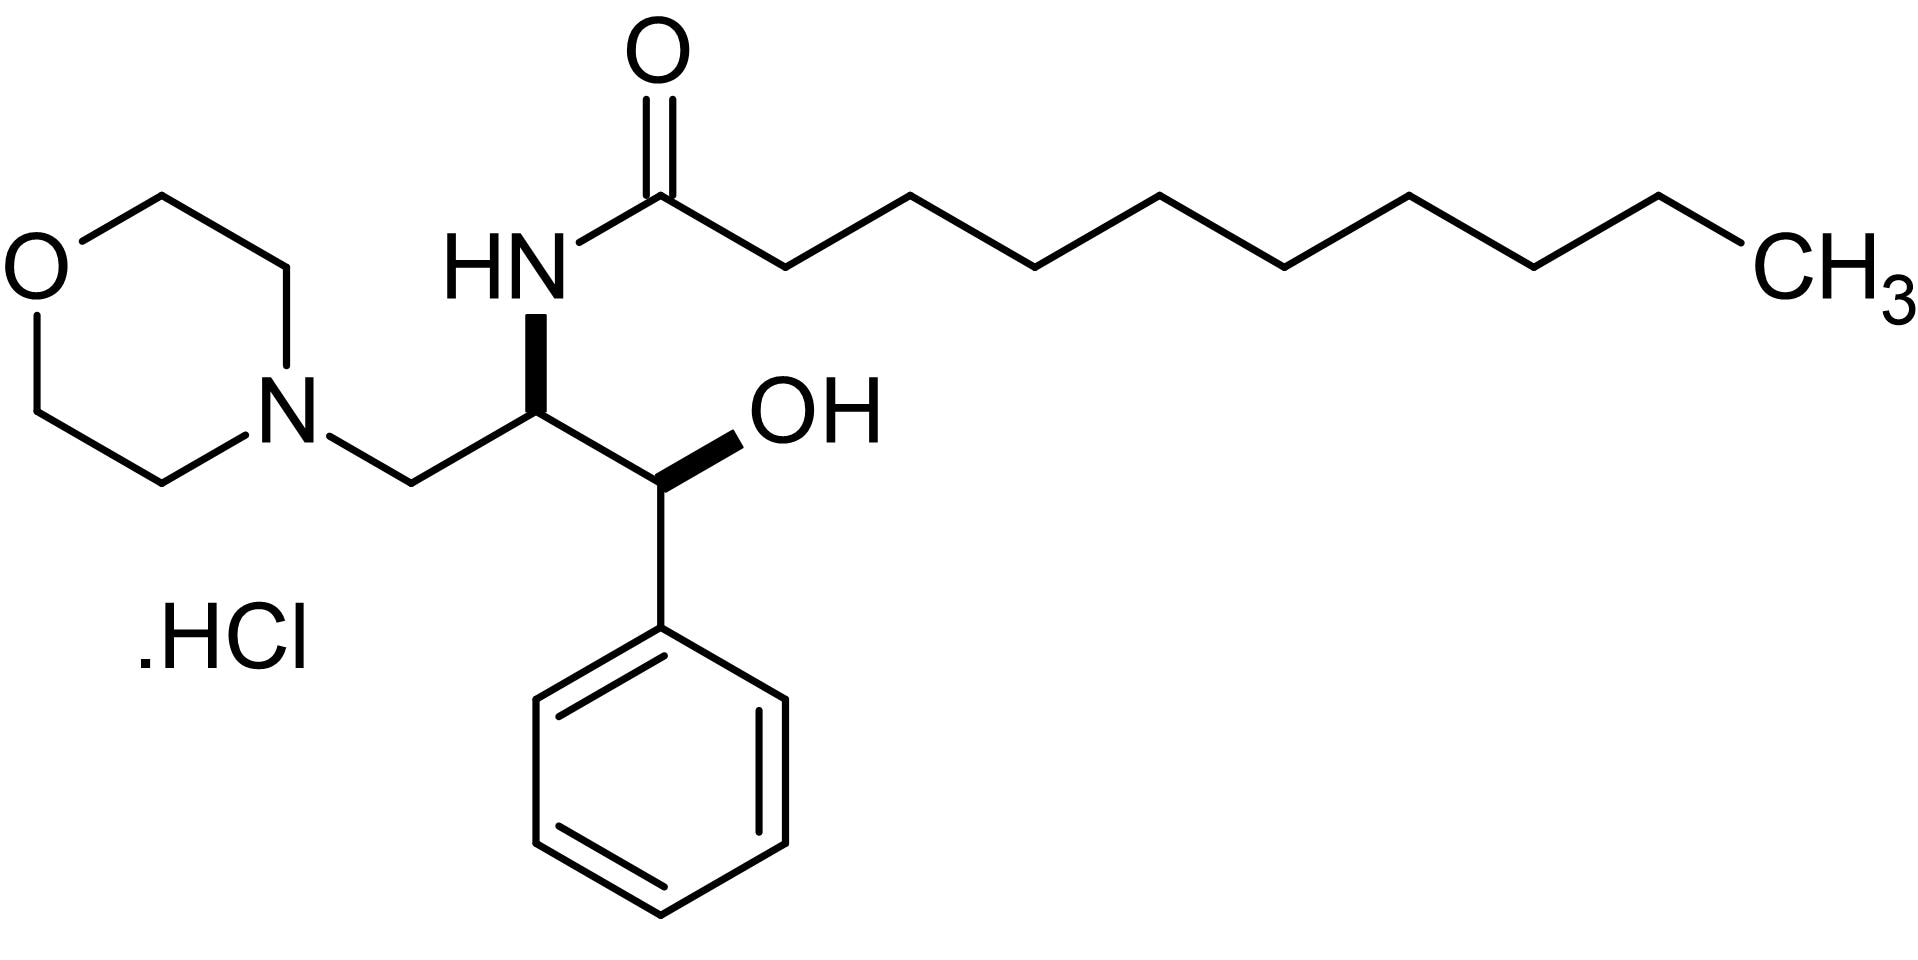 Chemical Structure - D,L-erythro-PDMP, glucosylceramide synthase inhibitor isomer (ab144051)